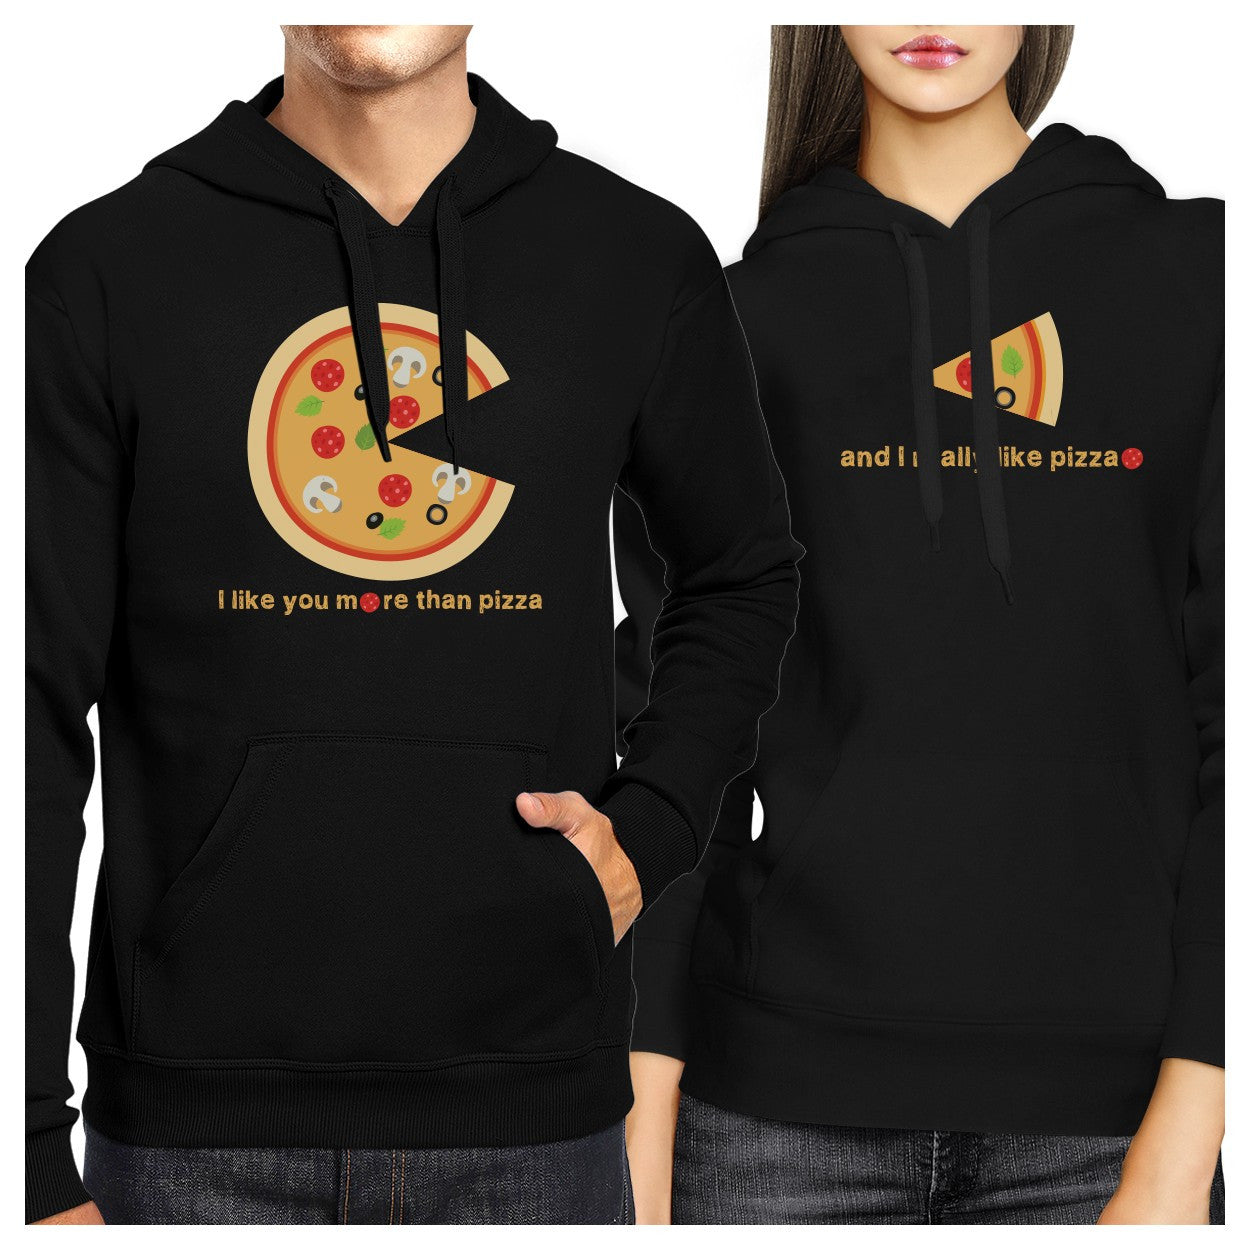 cf4f2d2caf I Like You More Than Pizza Couple Hoodies Valentines Day Gift Idea -  365INLOVE